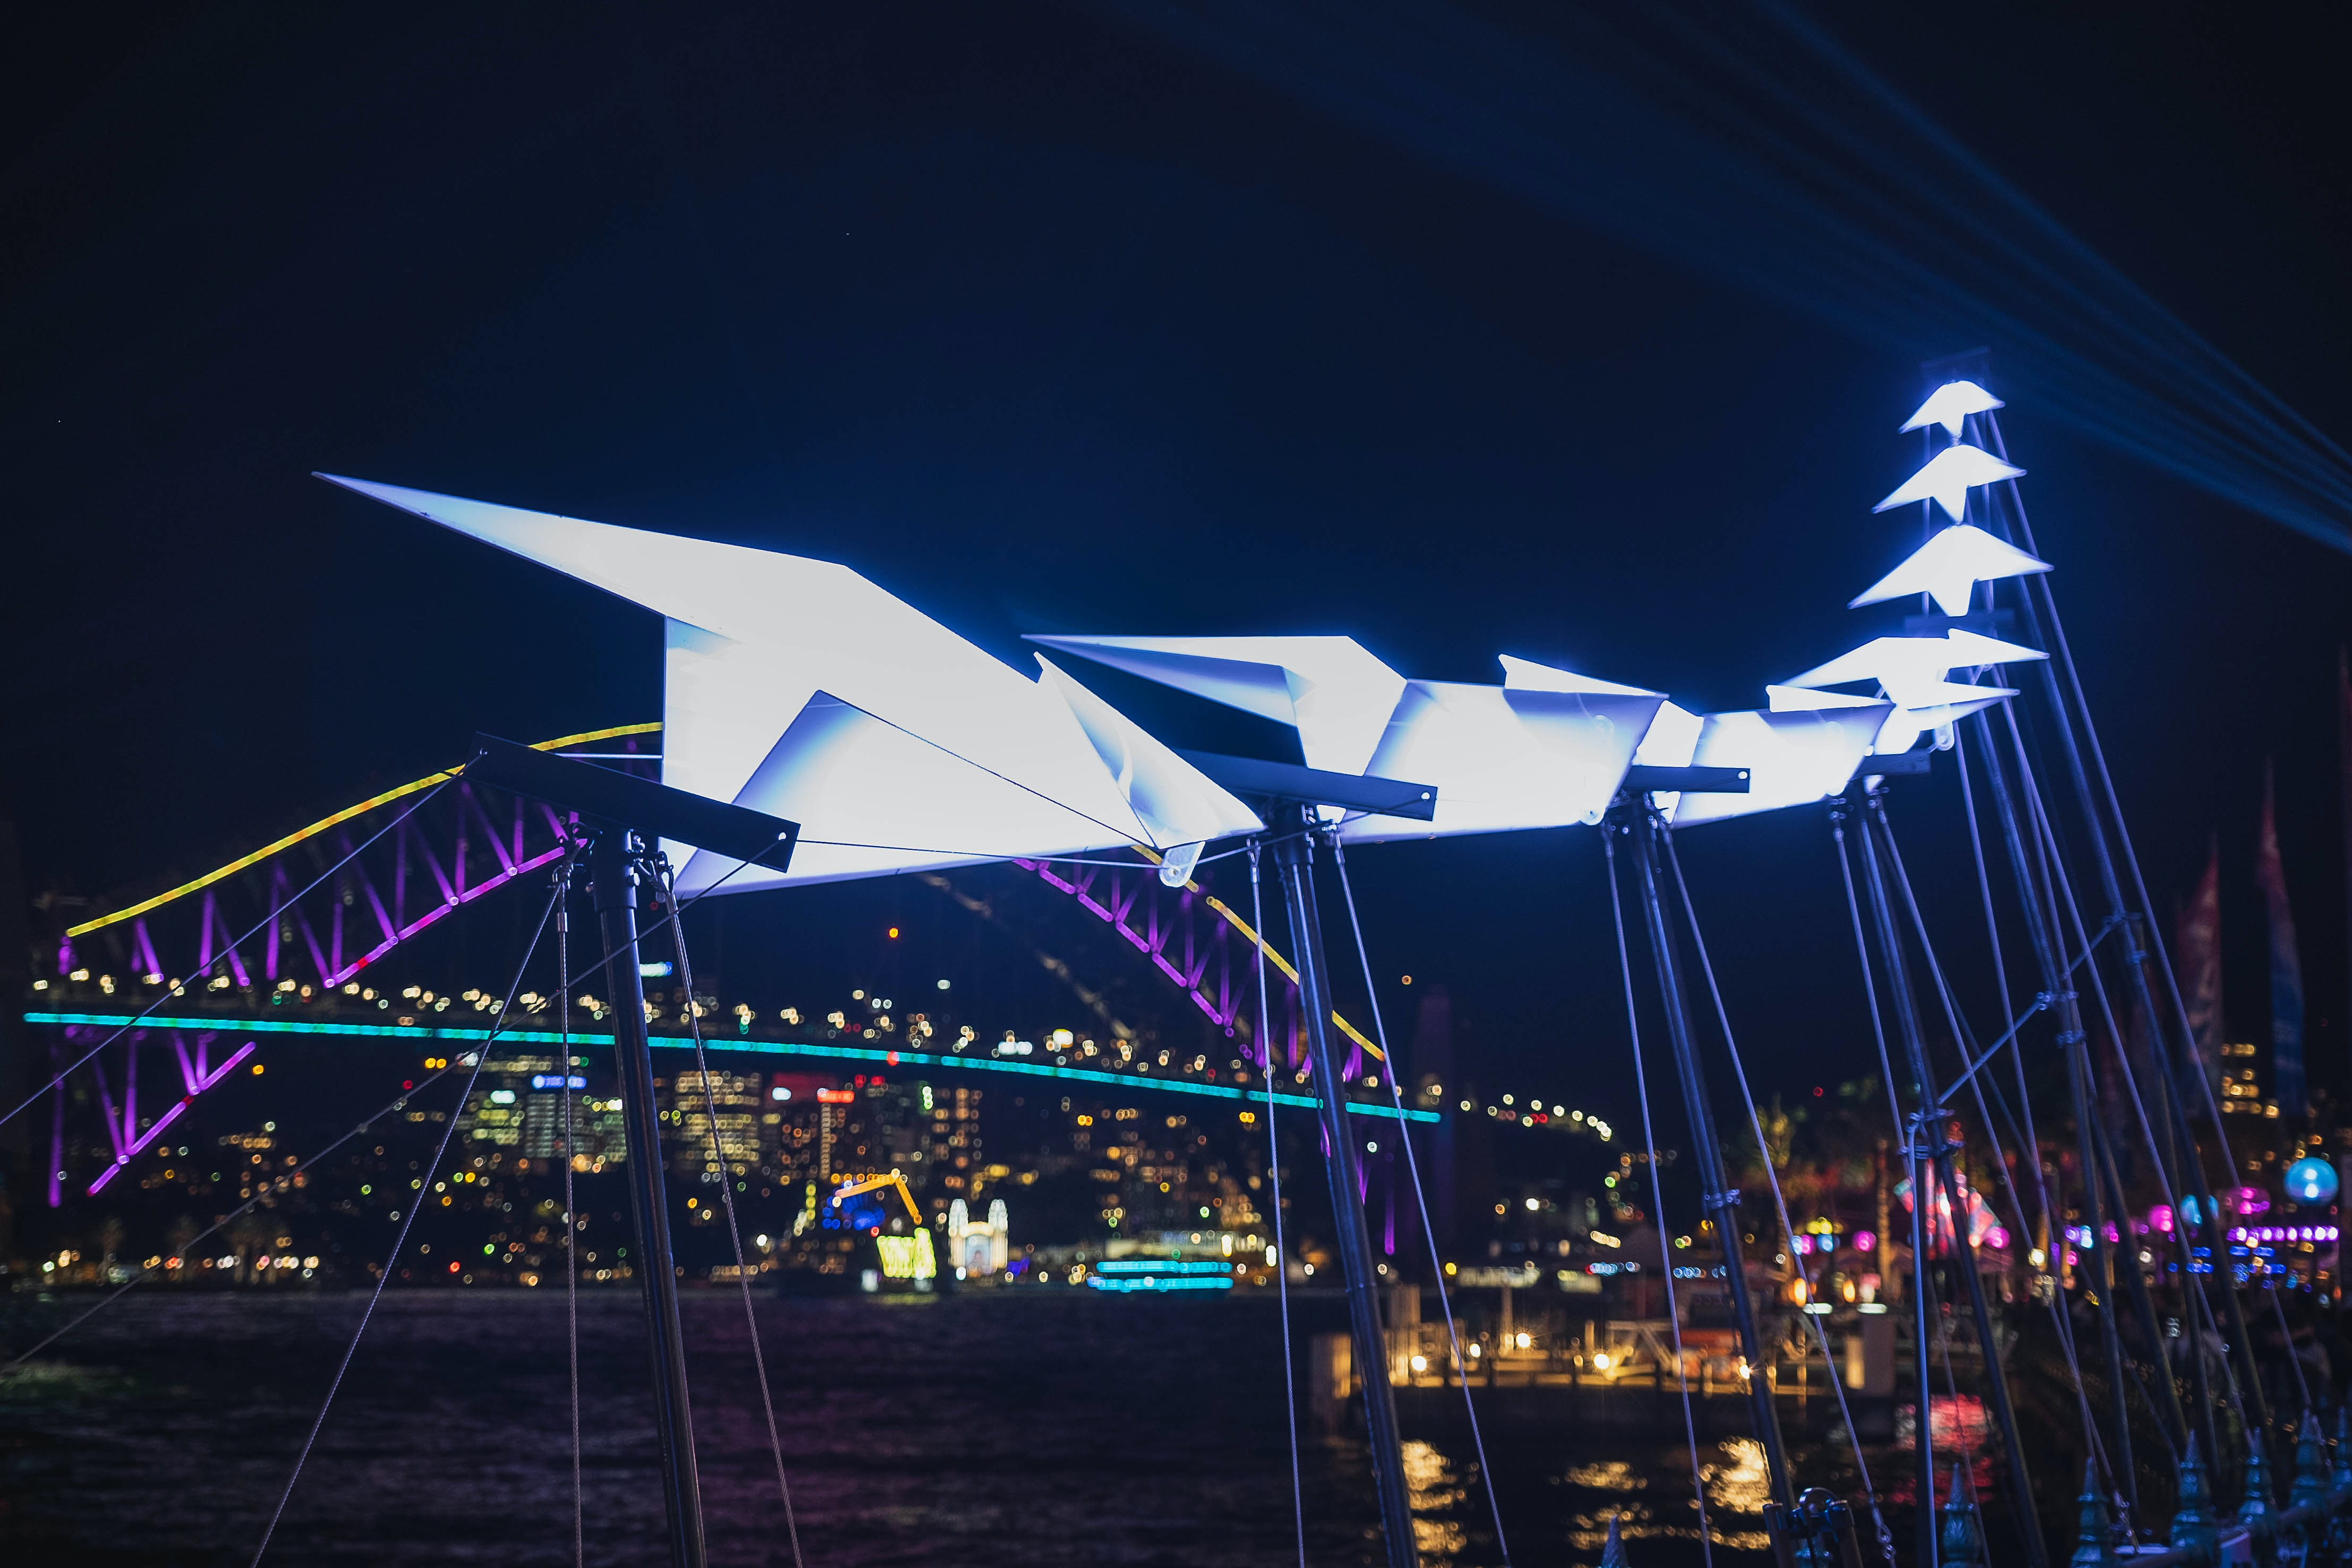 white planes sculpture with lights at night